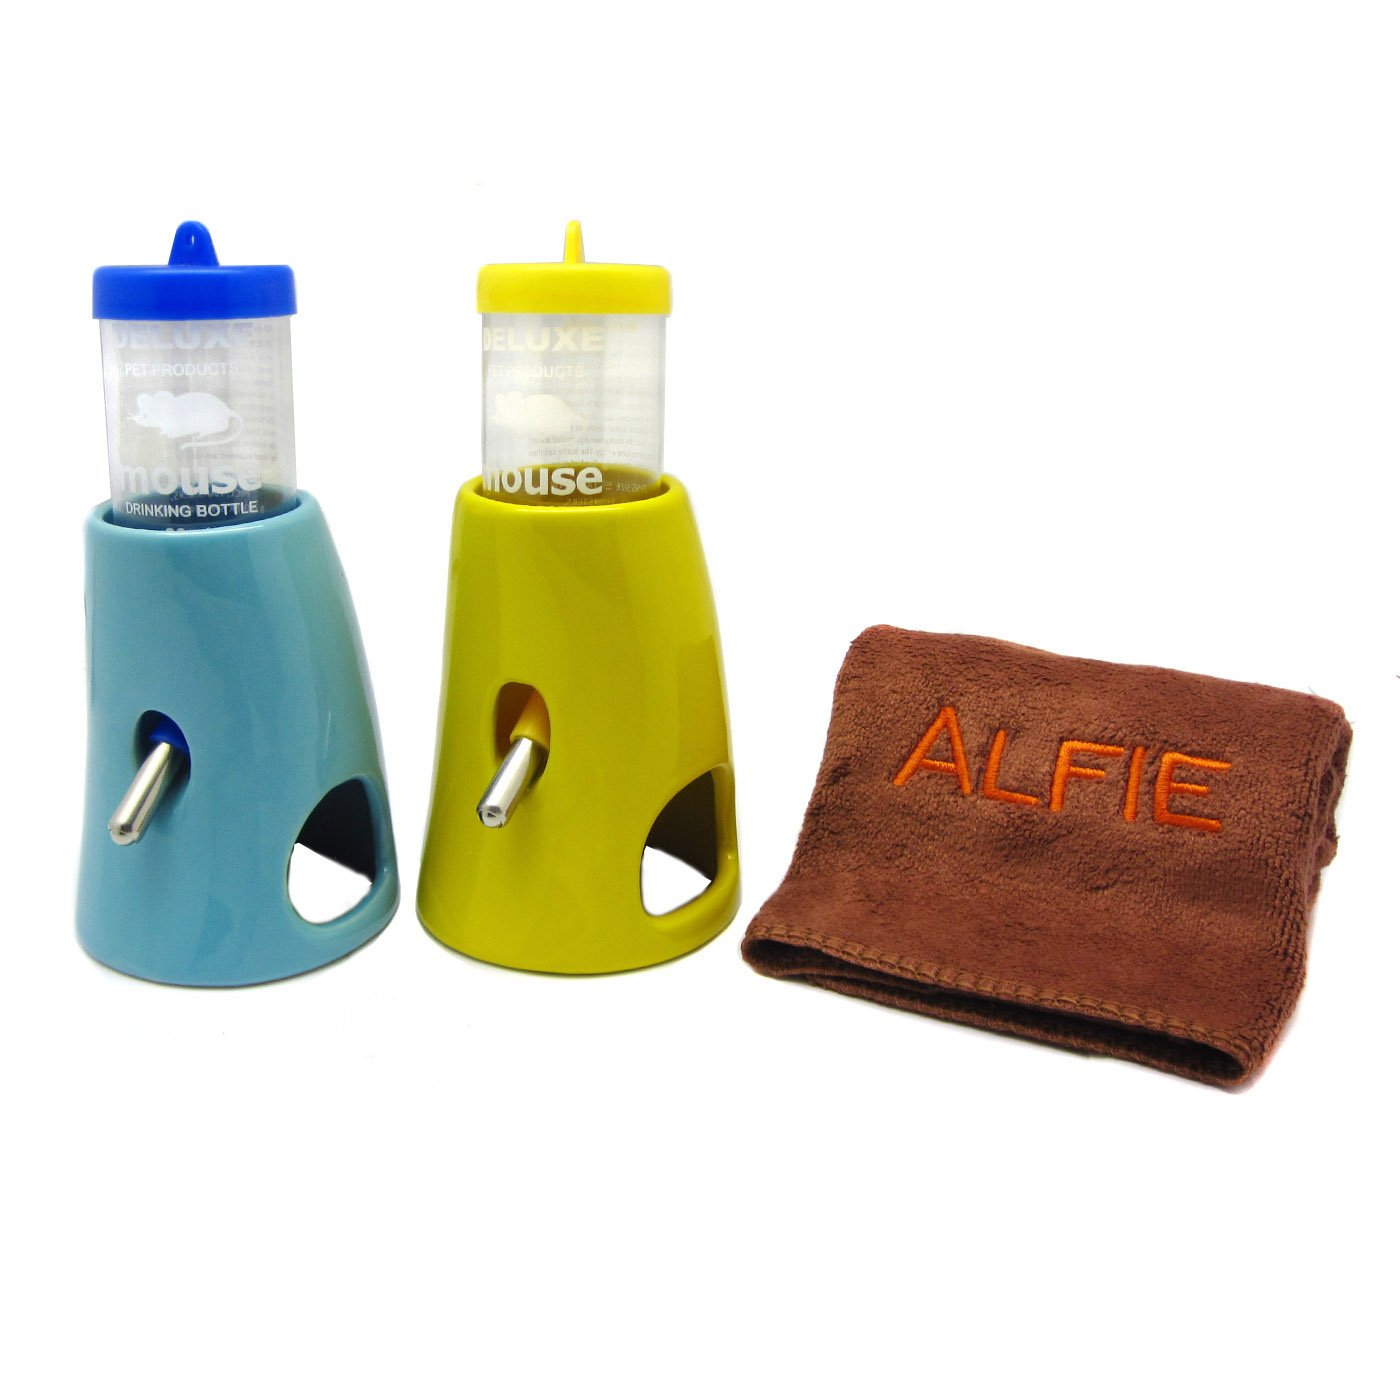 Alfie Pet - 2-in-1 Water Bottle with Ceramic Base Hut 2-Pieces Set with Microfiber Fast-Dry Washcloth for Small Animals Like Dwarf Hamster and Mouse by Alfie